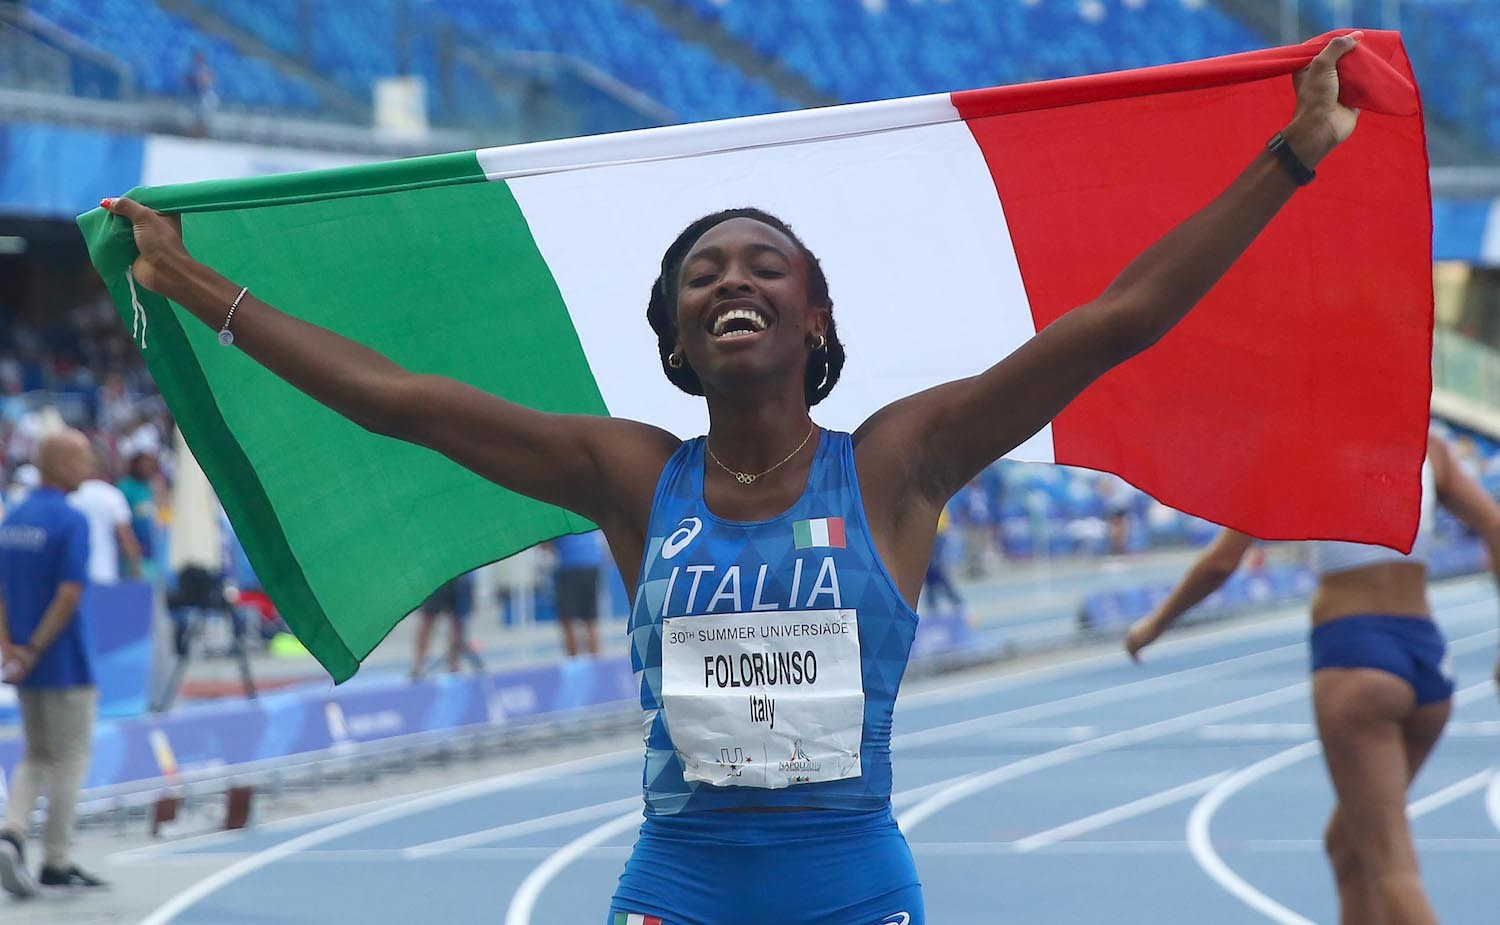 Italy's Ayomide Folorunso retained her women's 400m hurdles title ©FISU